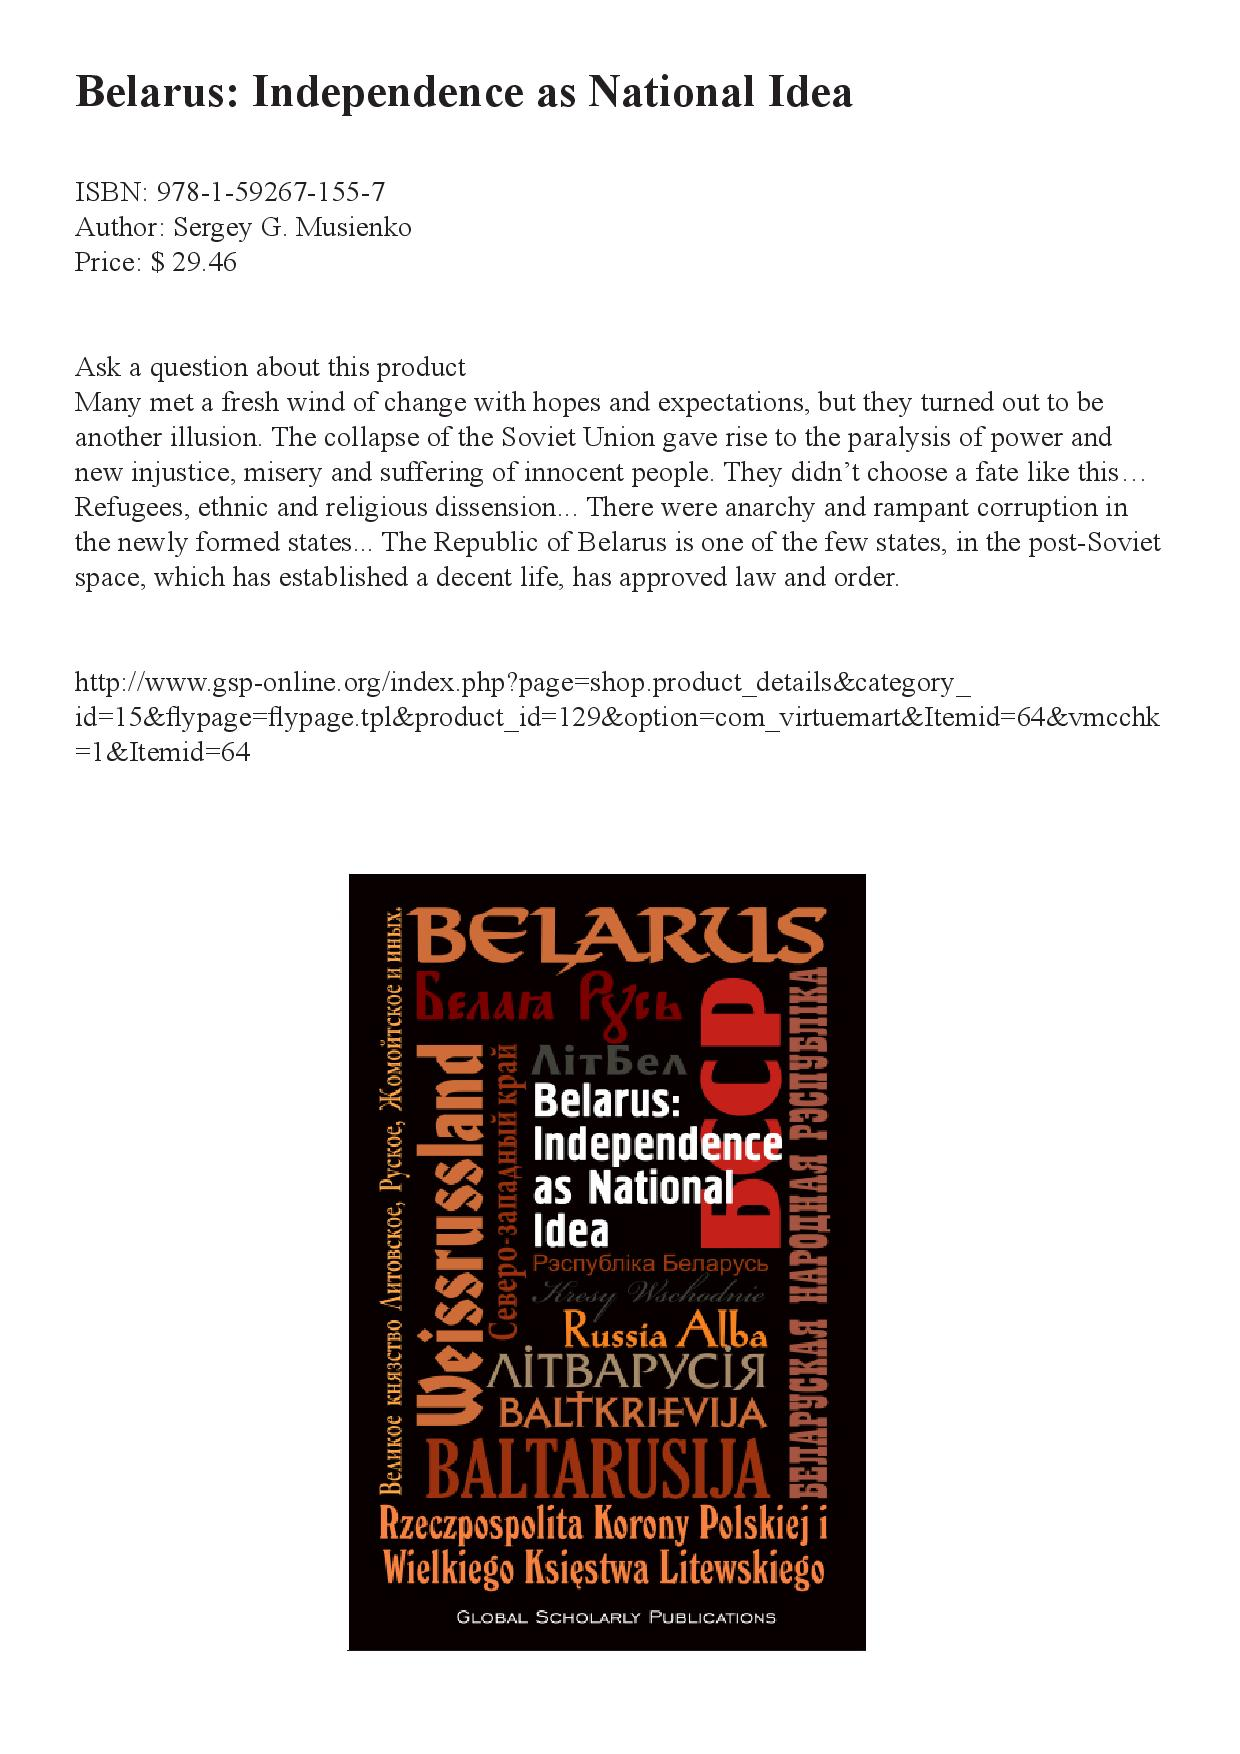 Belarus Independence as National Idea-page-001